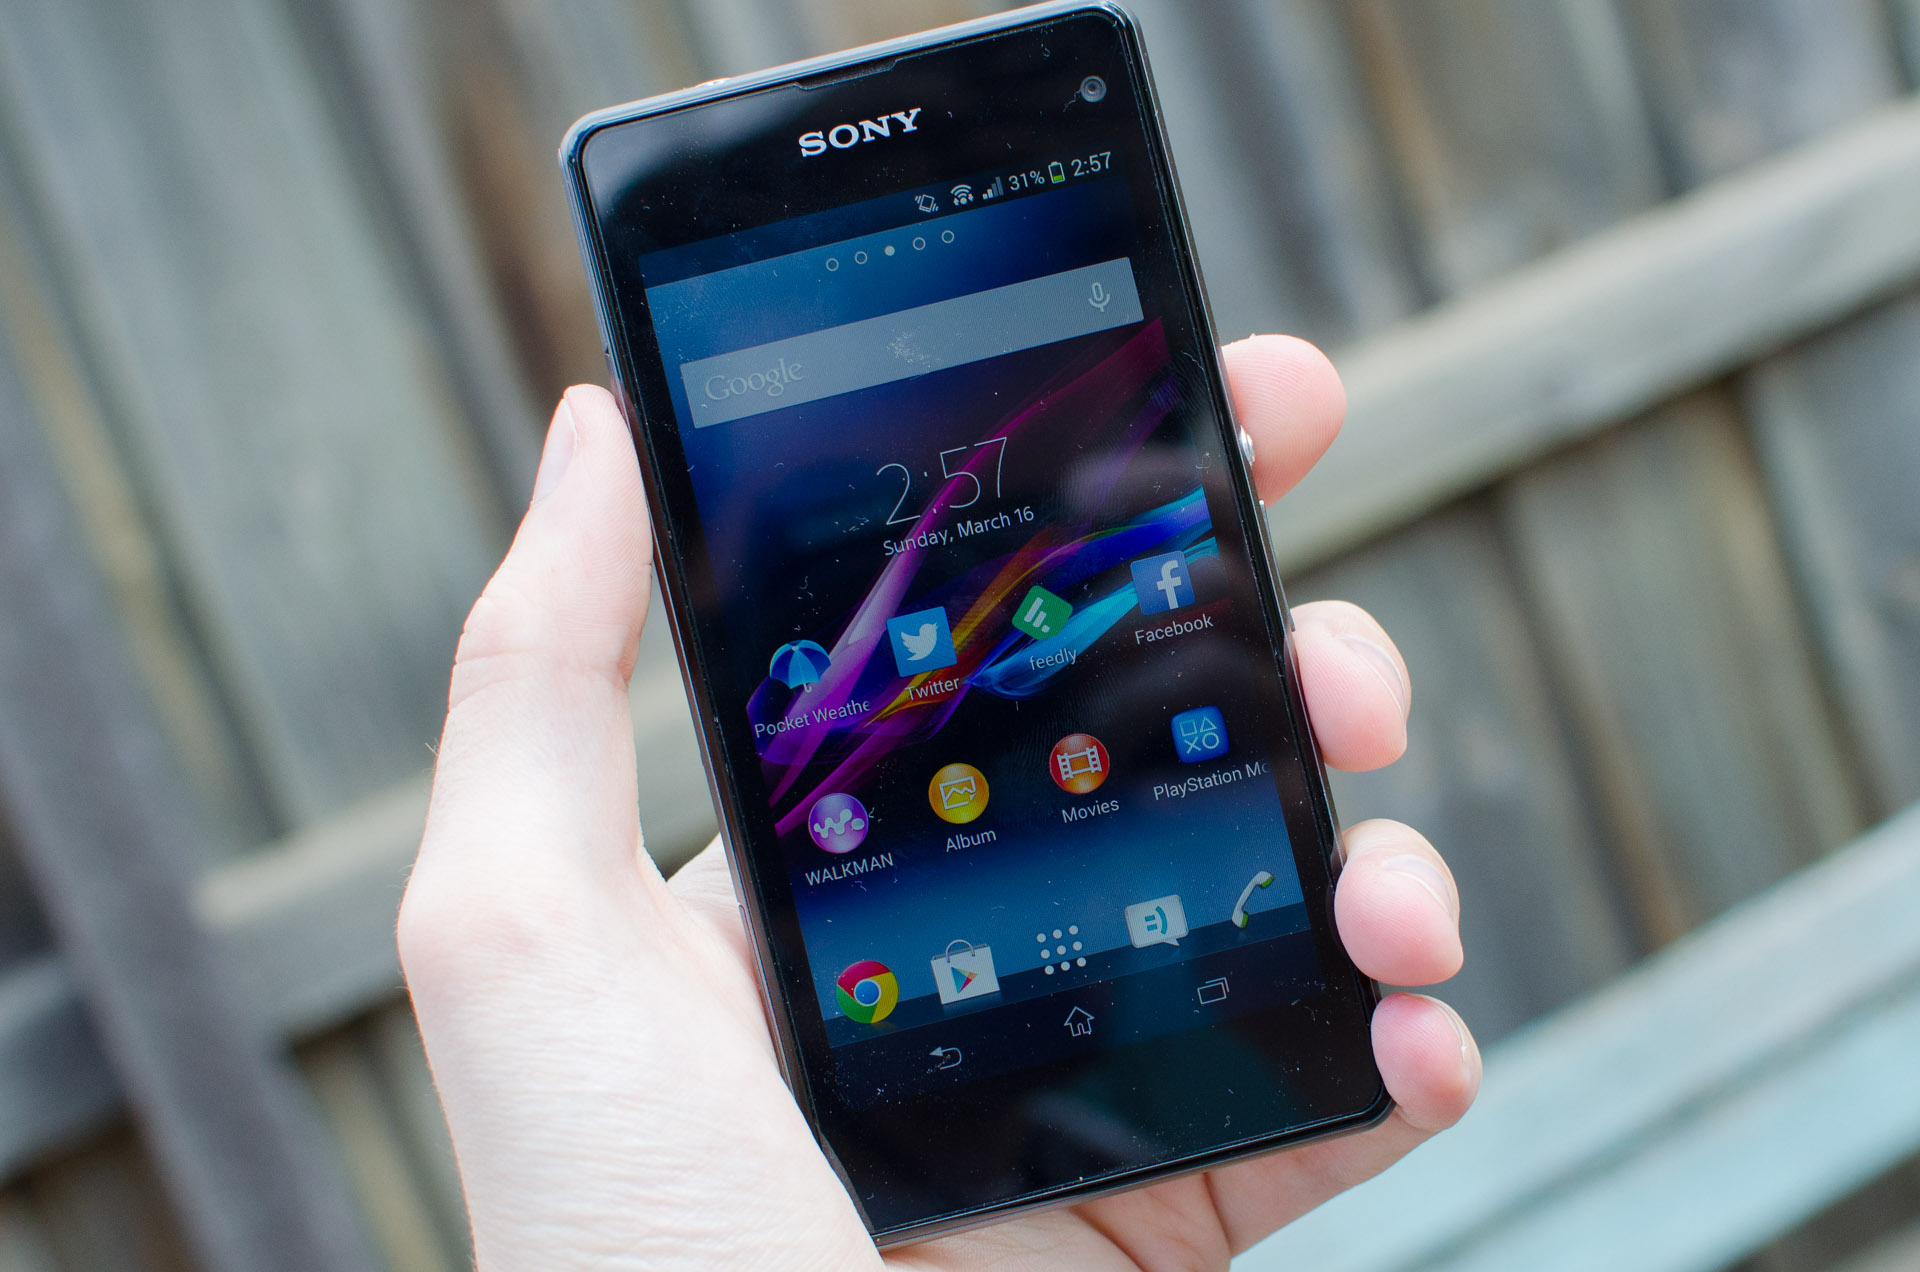 Sony Xperia Z1 Compact Review - TechSpot